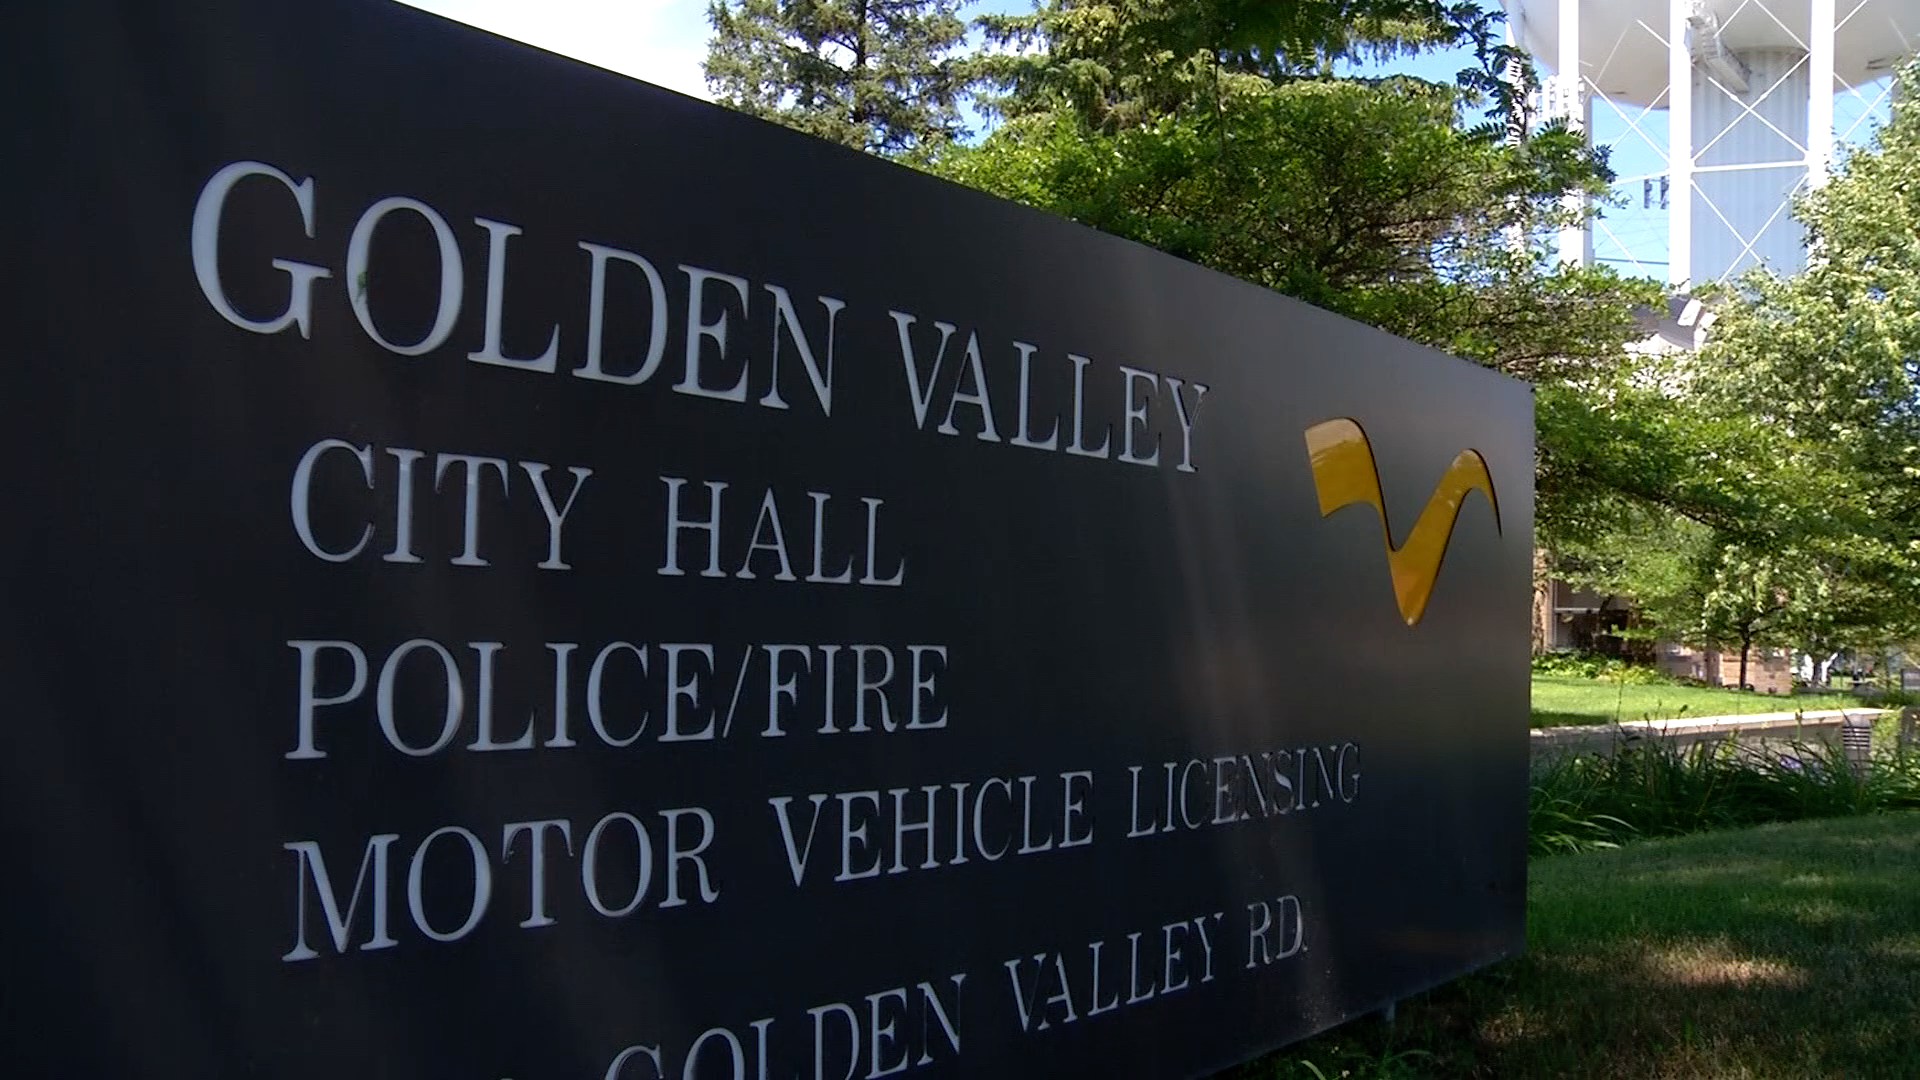 Golden Valley City Hall sign